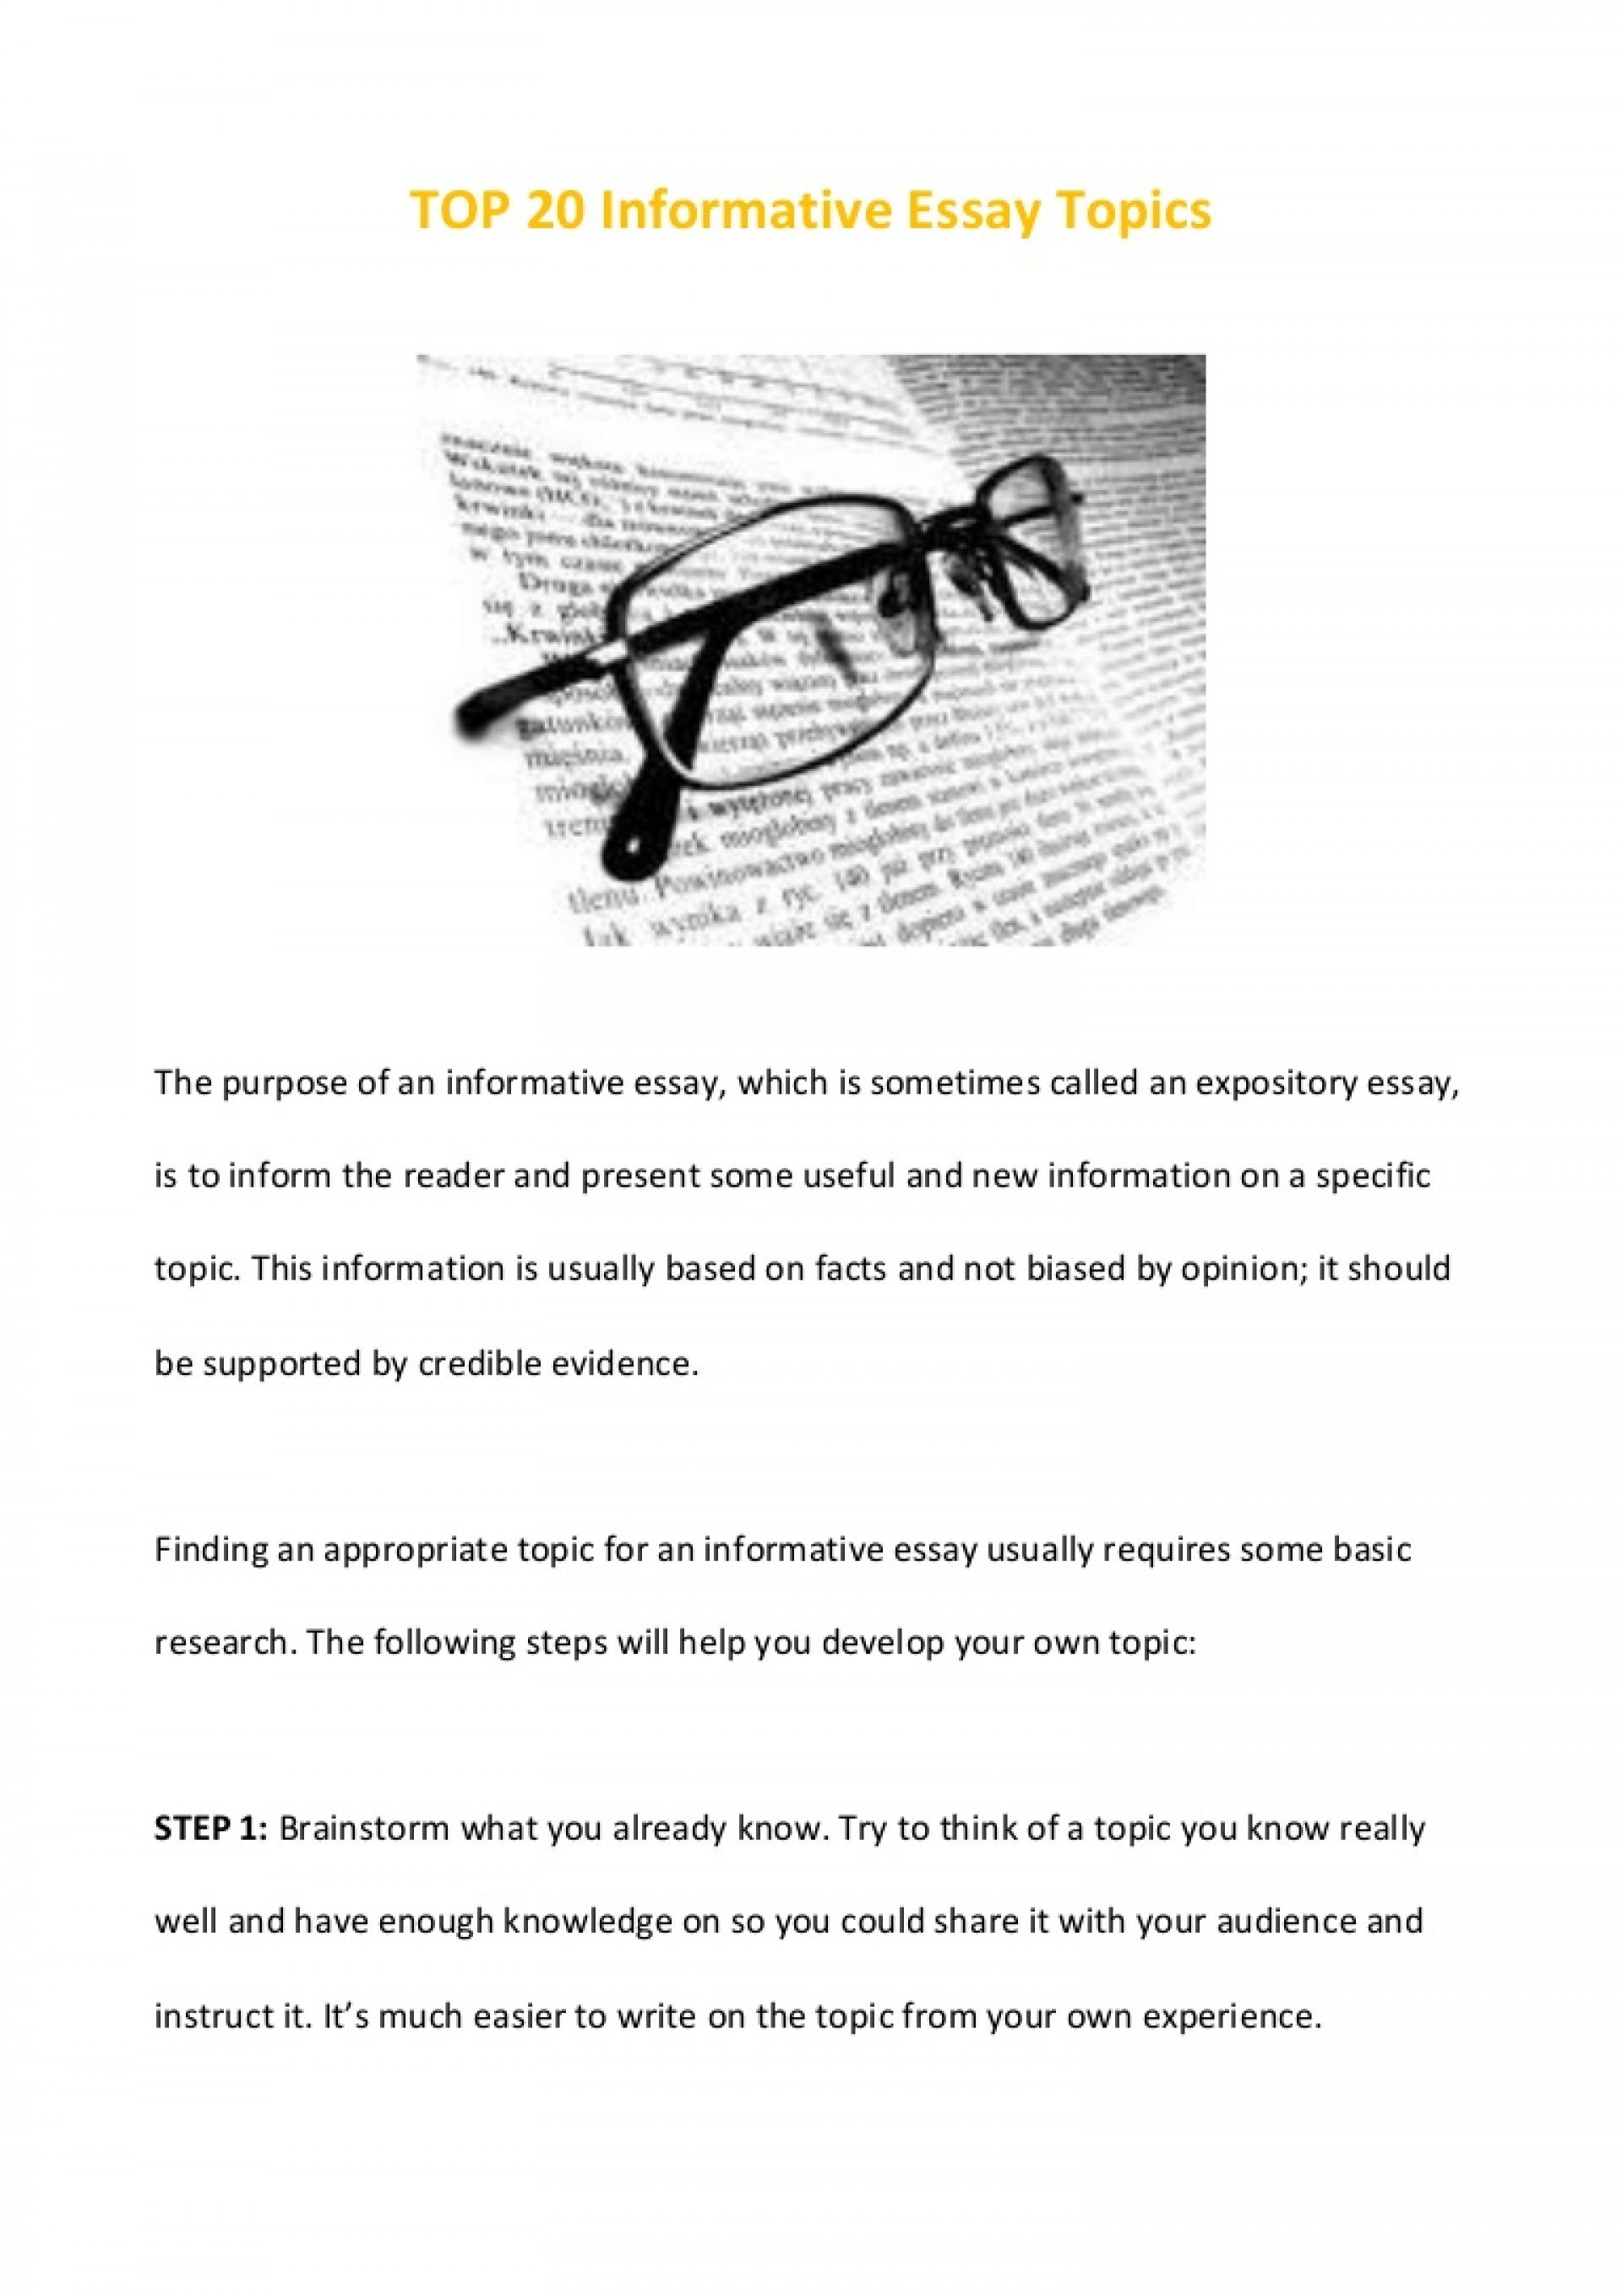 011 Essay Example Top20informativeessaytopics Phpapp02 Thumbnail Informative Remarkable Topics For 4th Grade Expository High School 6th Graders 1920